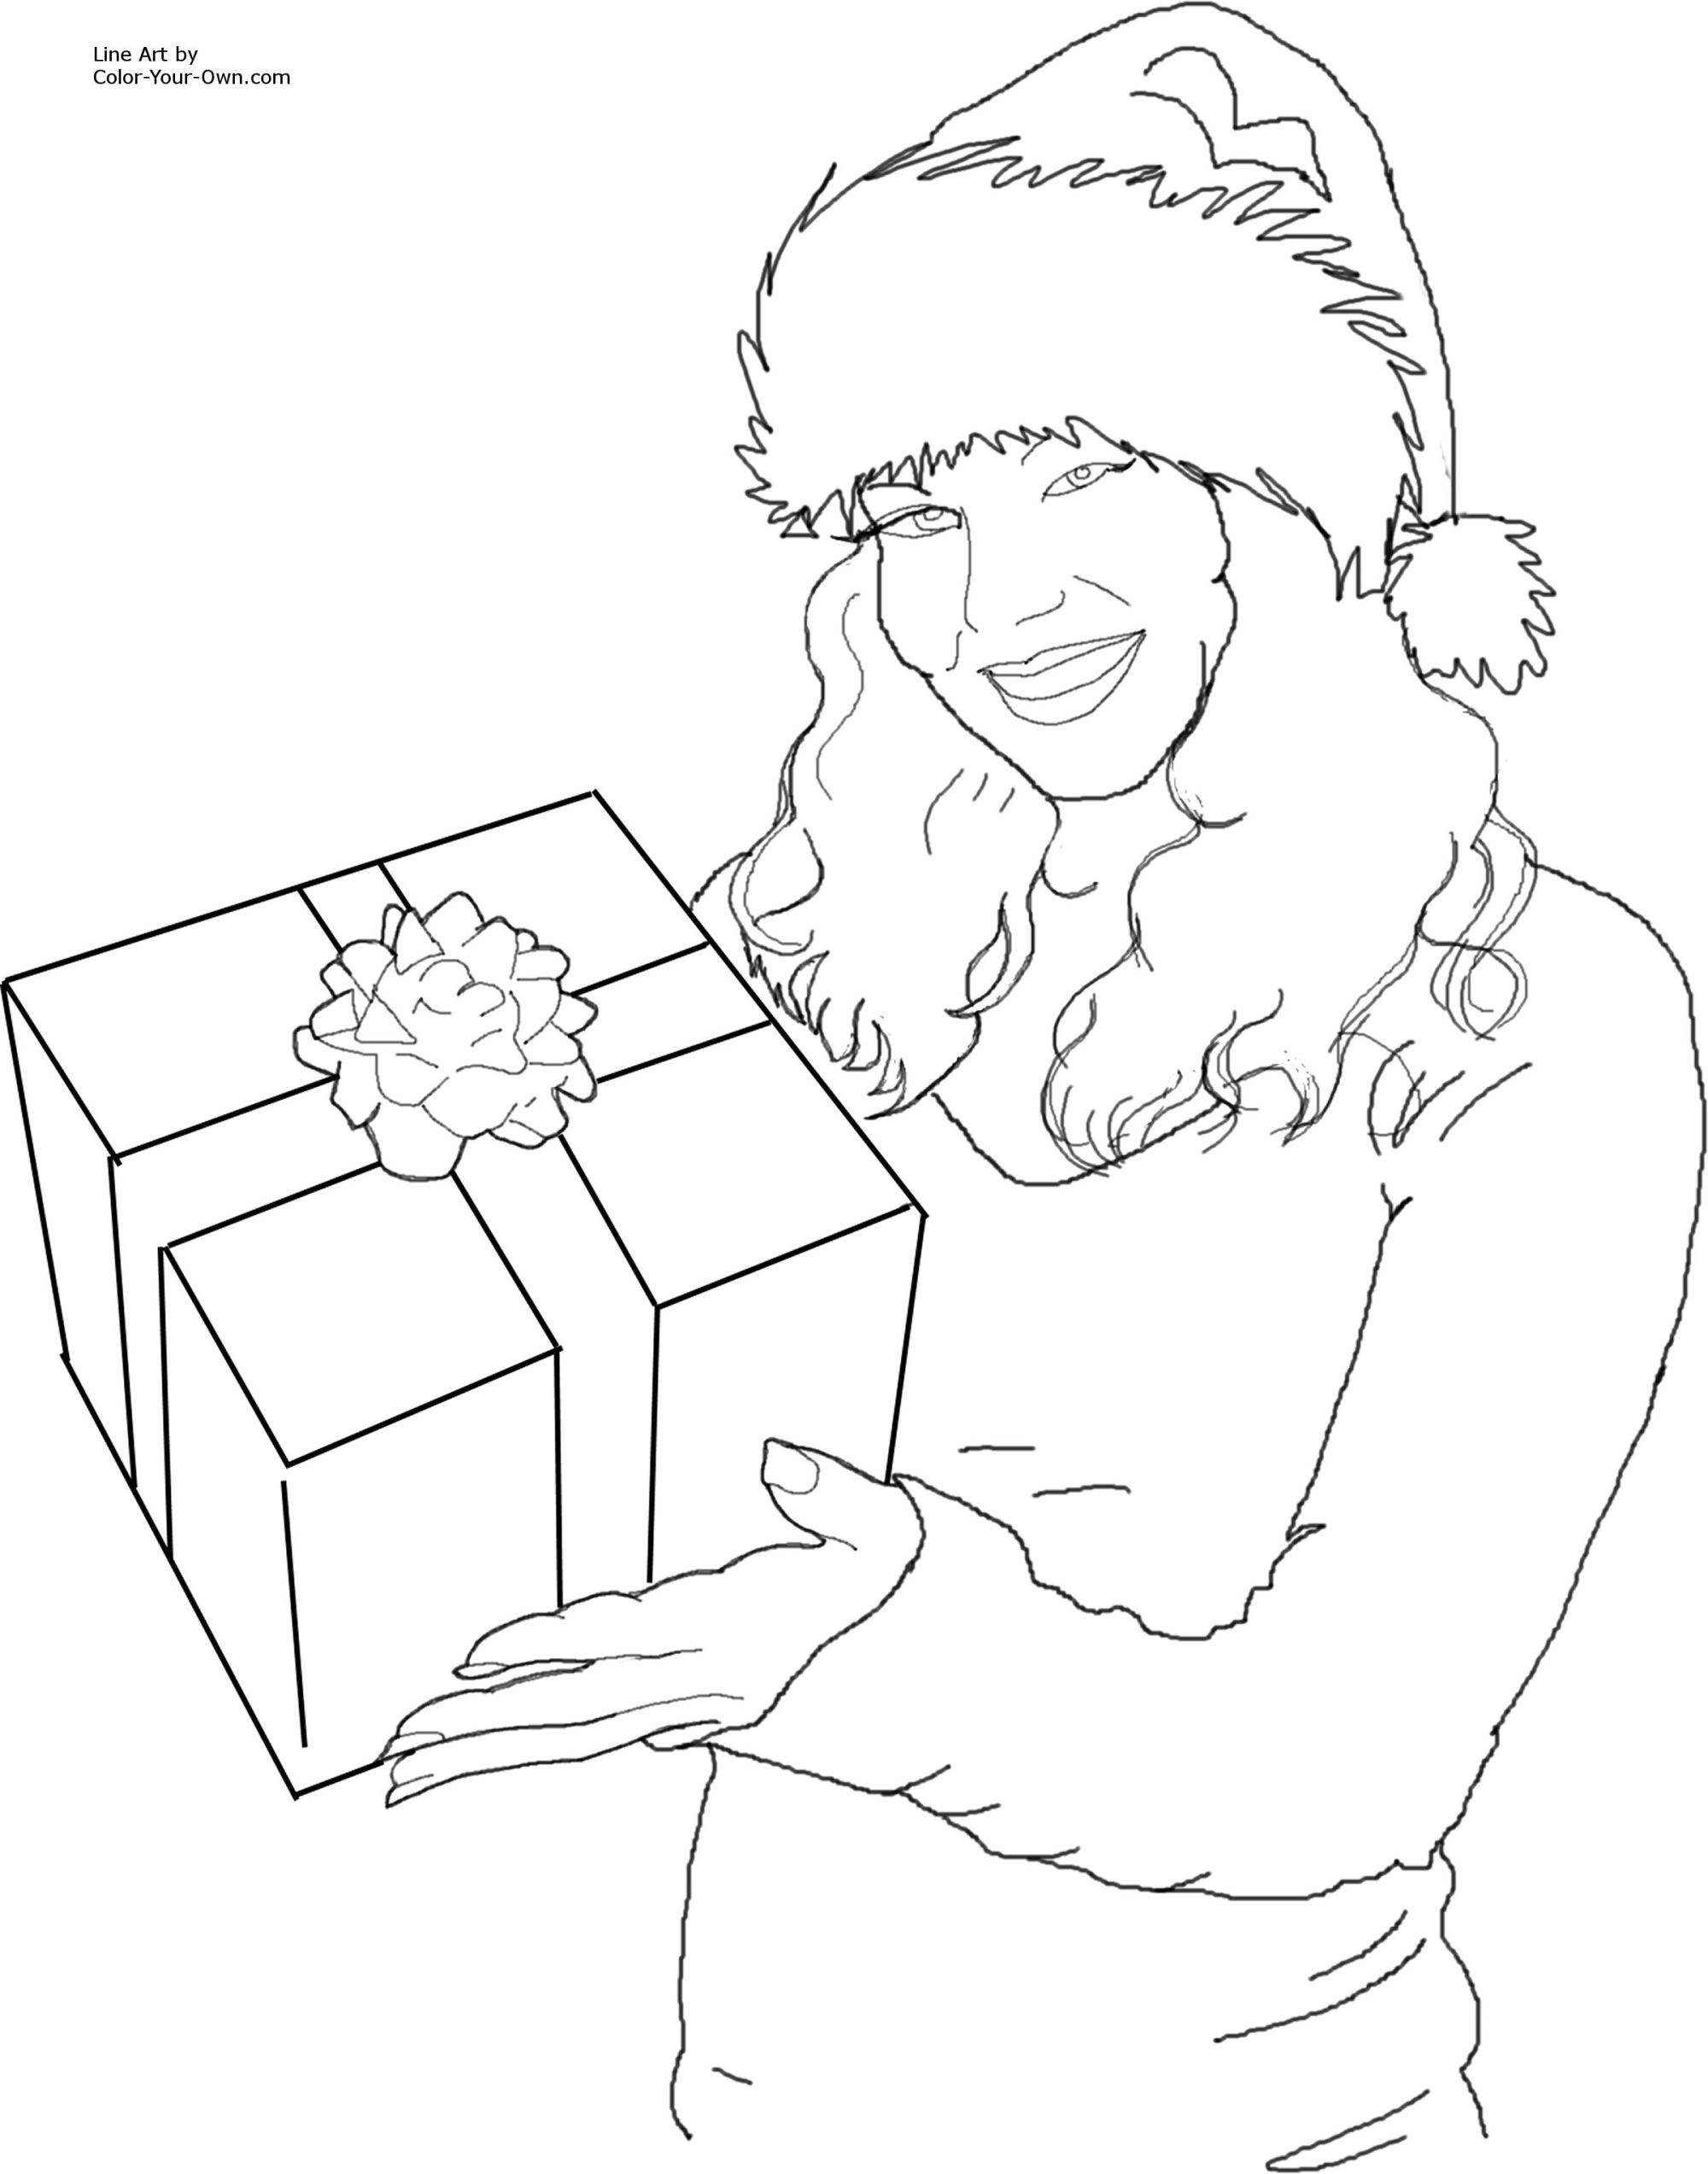 hight resolution of 433x527 chevy silverado parts diagram systematic drawing accordingly famreit 2400x3056 christmas santa s helper with a gift coloring page